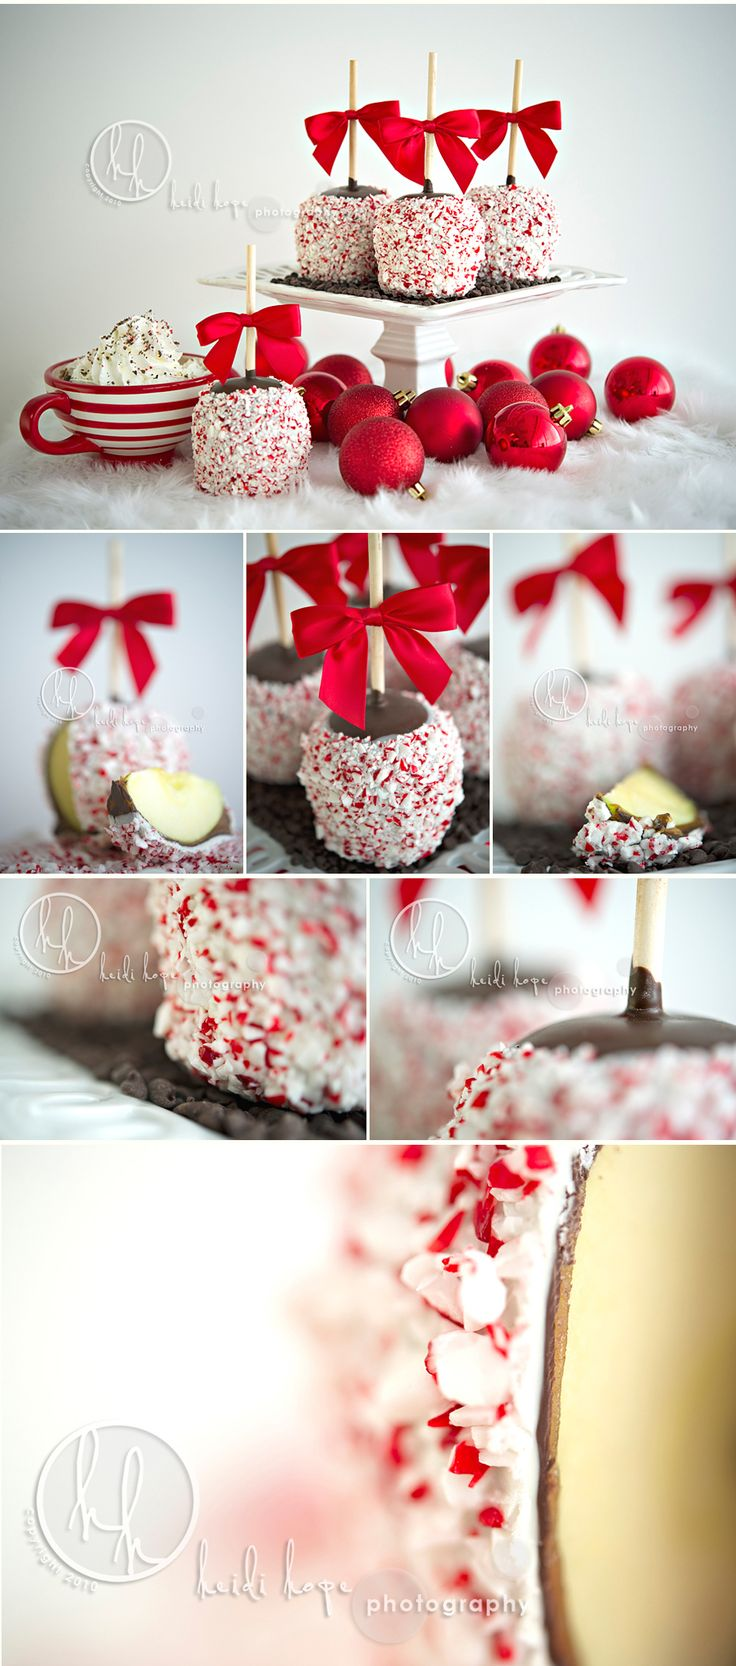 I think this would be good as a cake pop